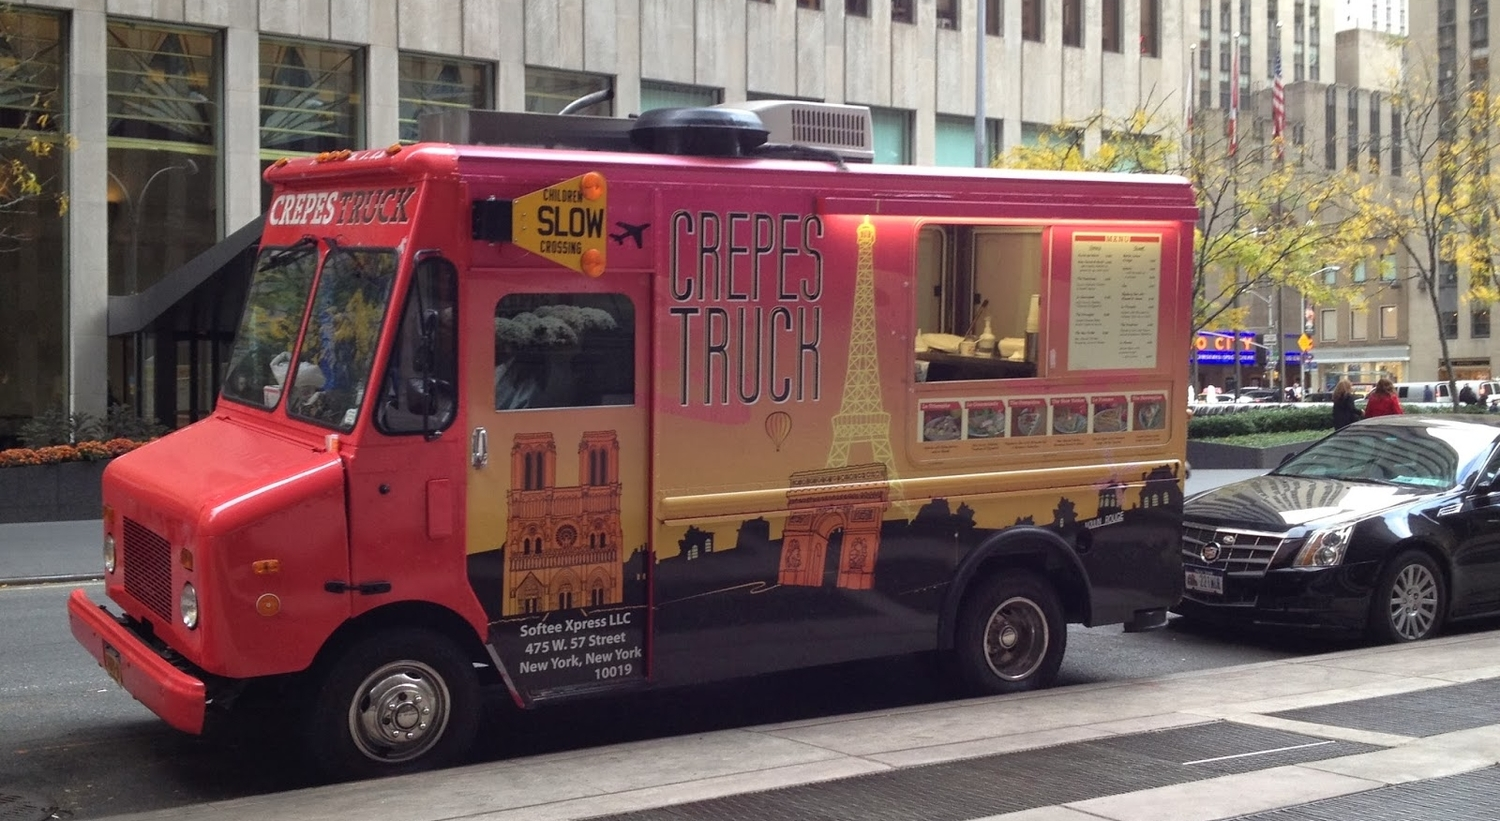 Crepes Truck Food Truck